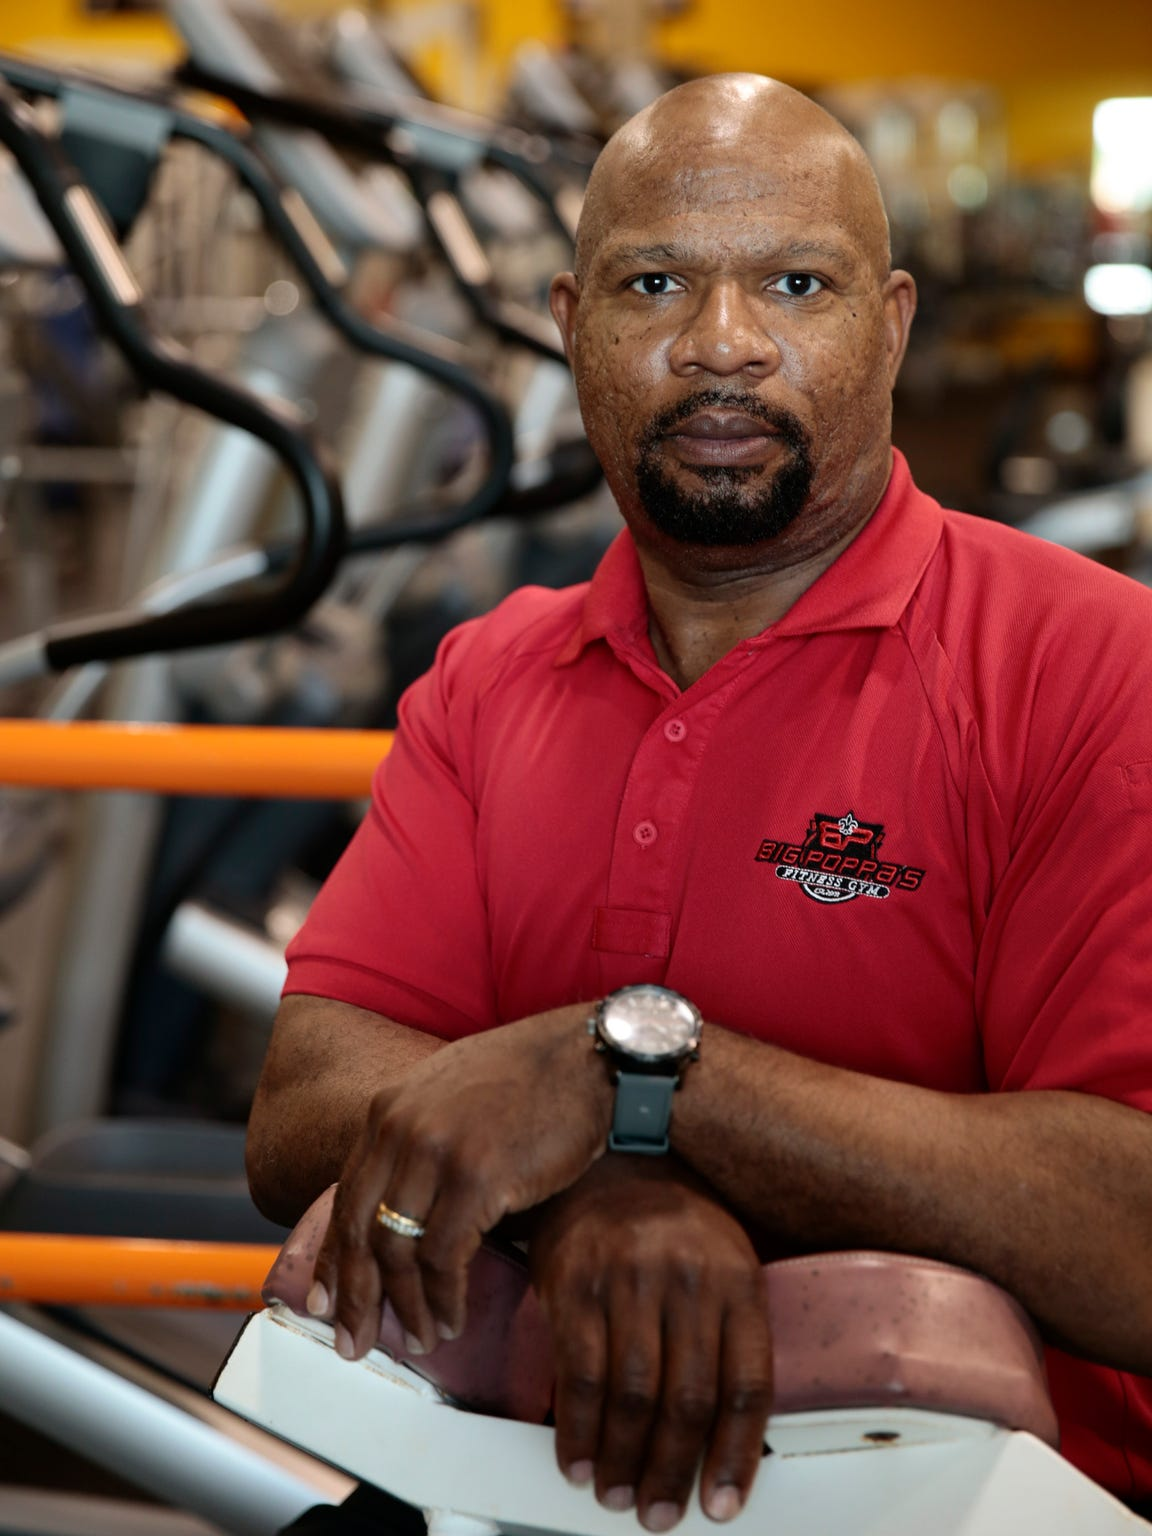 Joseph Prejean at Big Poppa's Fitness Gym, his Lafayette